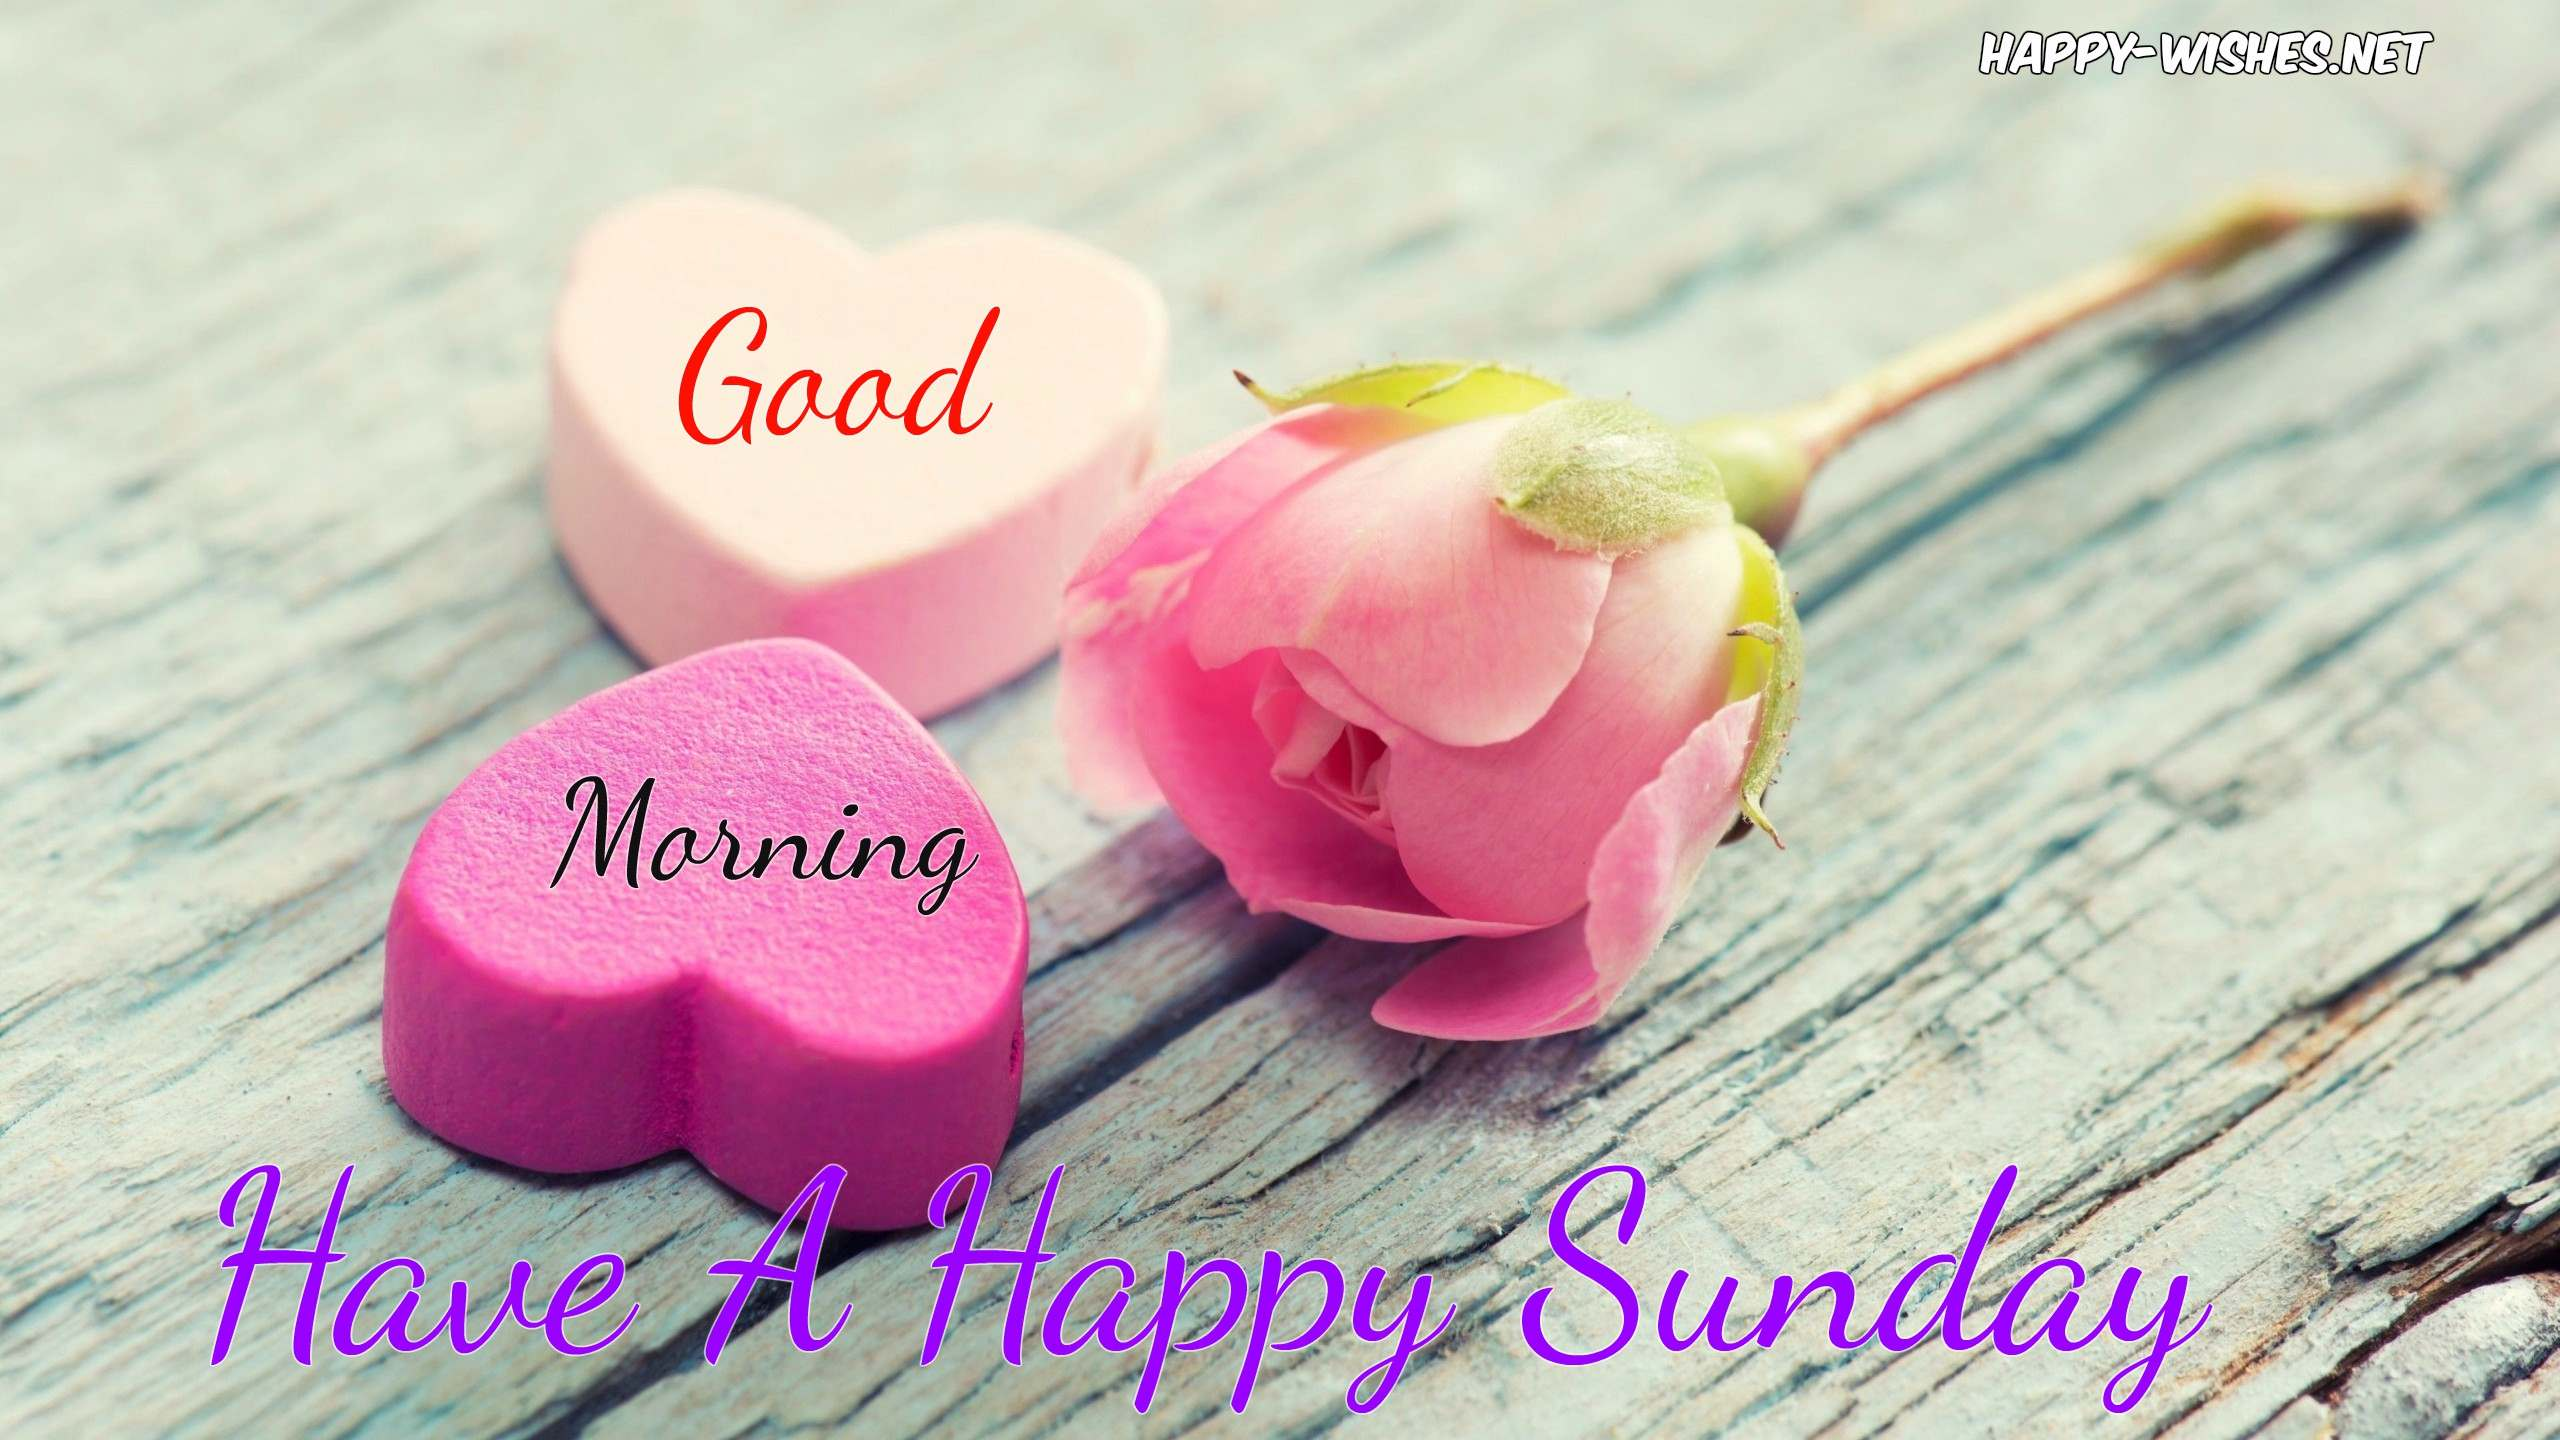 good morning wishes on